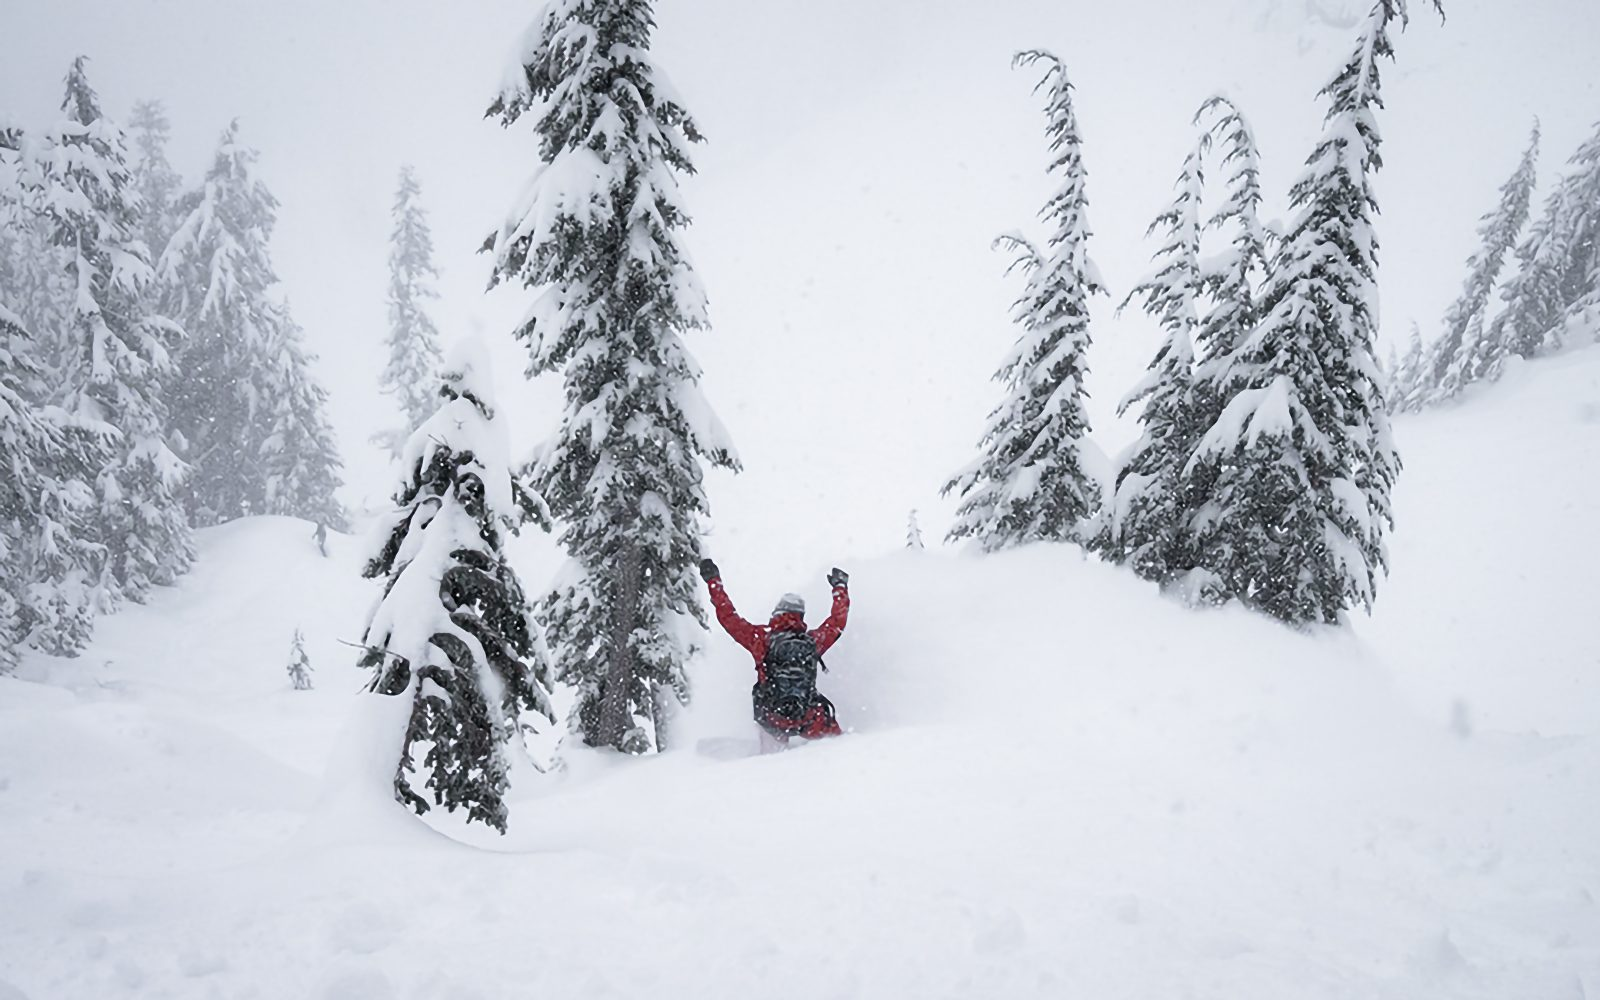 BackCountry Snowboarding In Major Storm